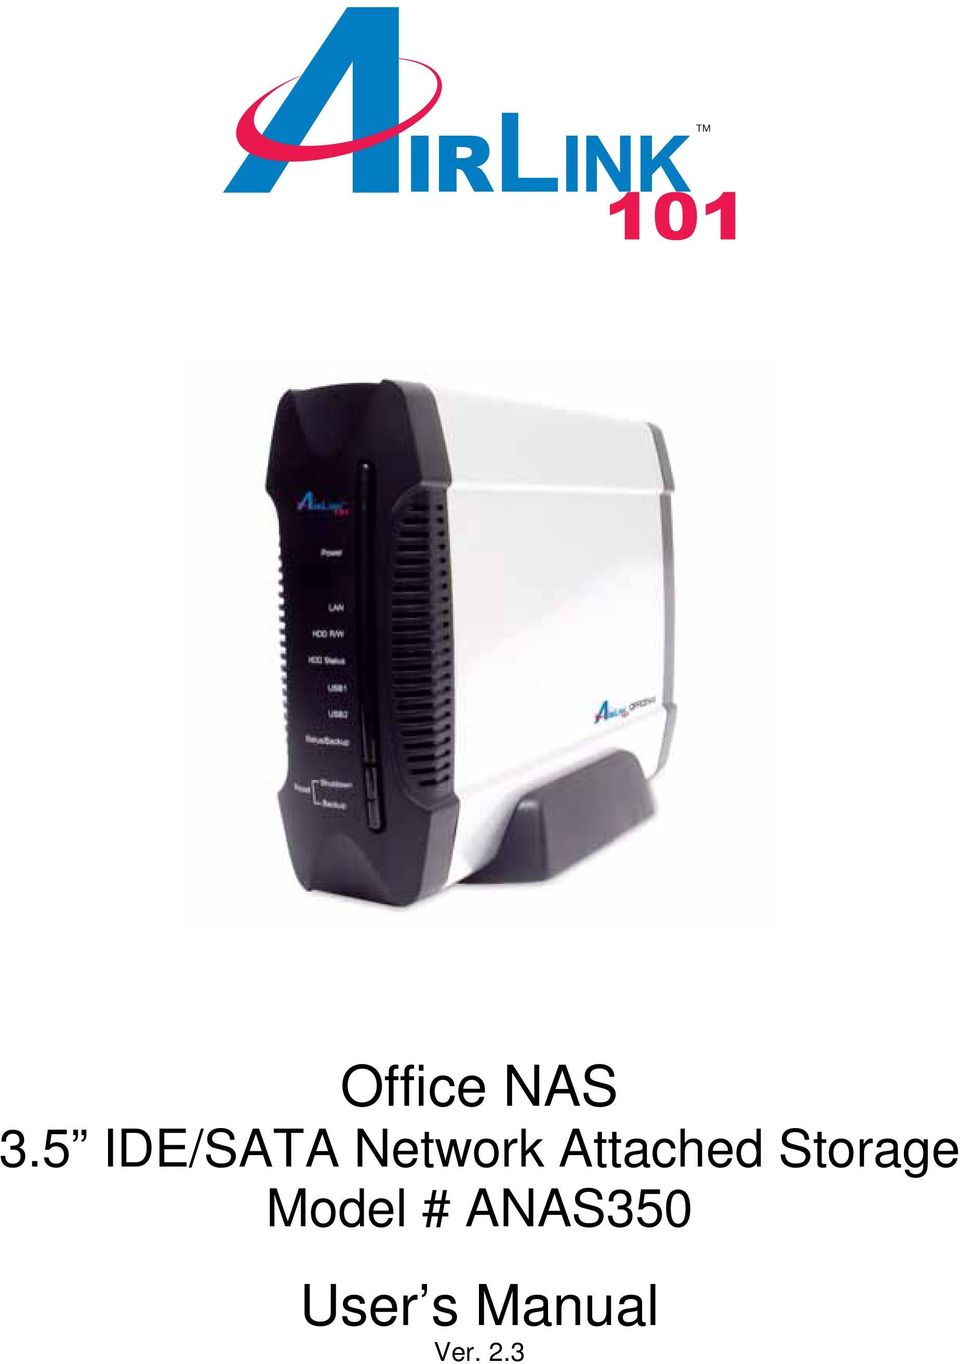 Attached Storage